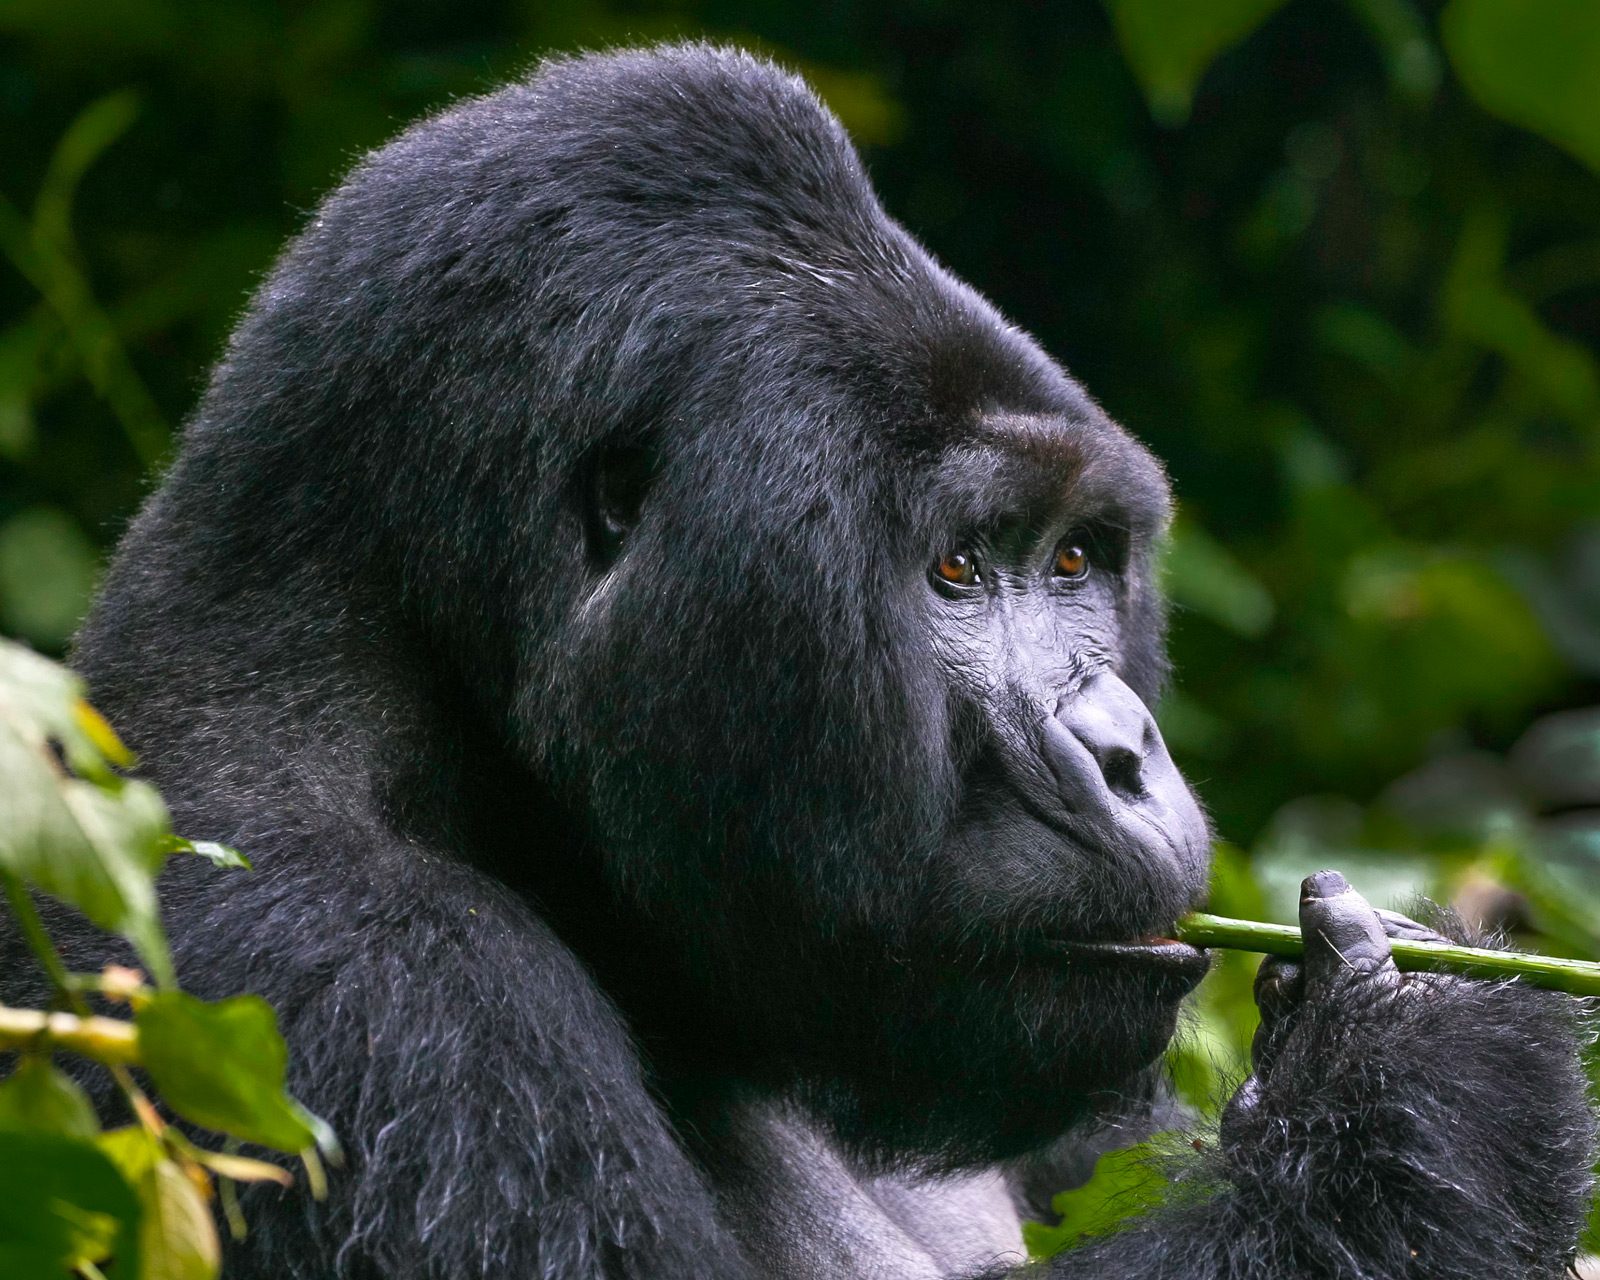 A silverback mountain gorilla has a pensive moment in Bwindi Impenetrable National Park, Uganda ©Martha Robbins